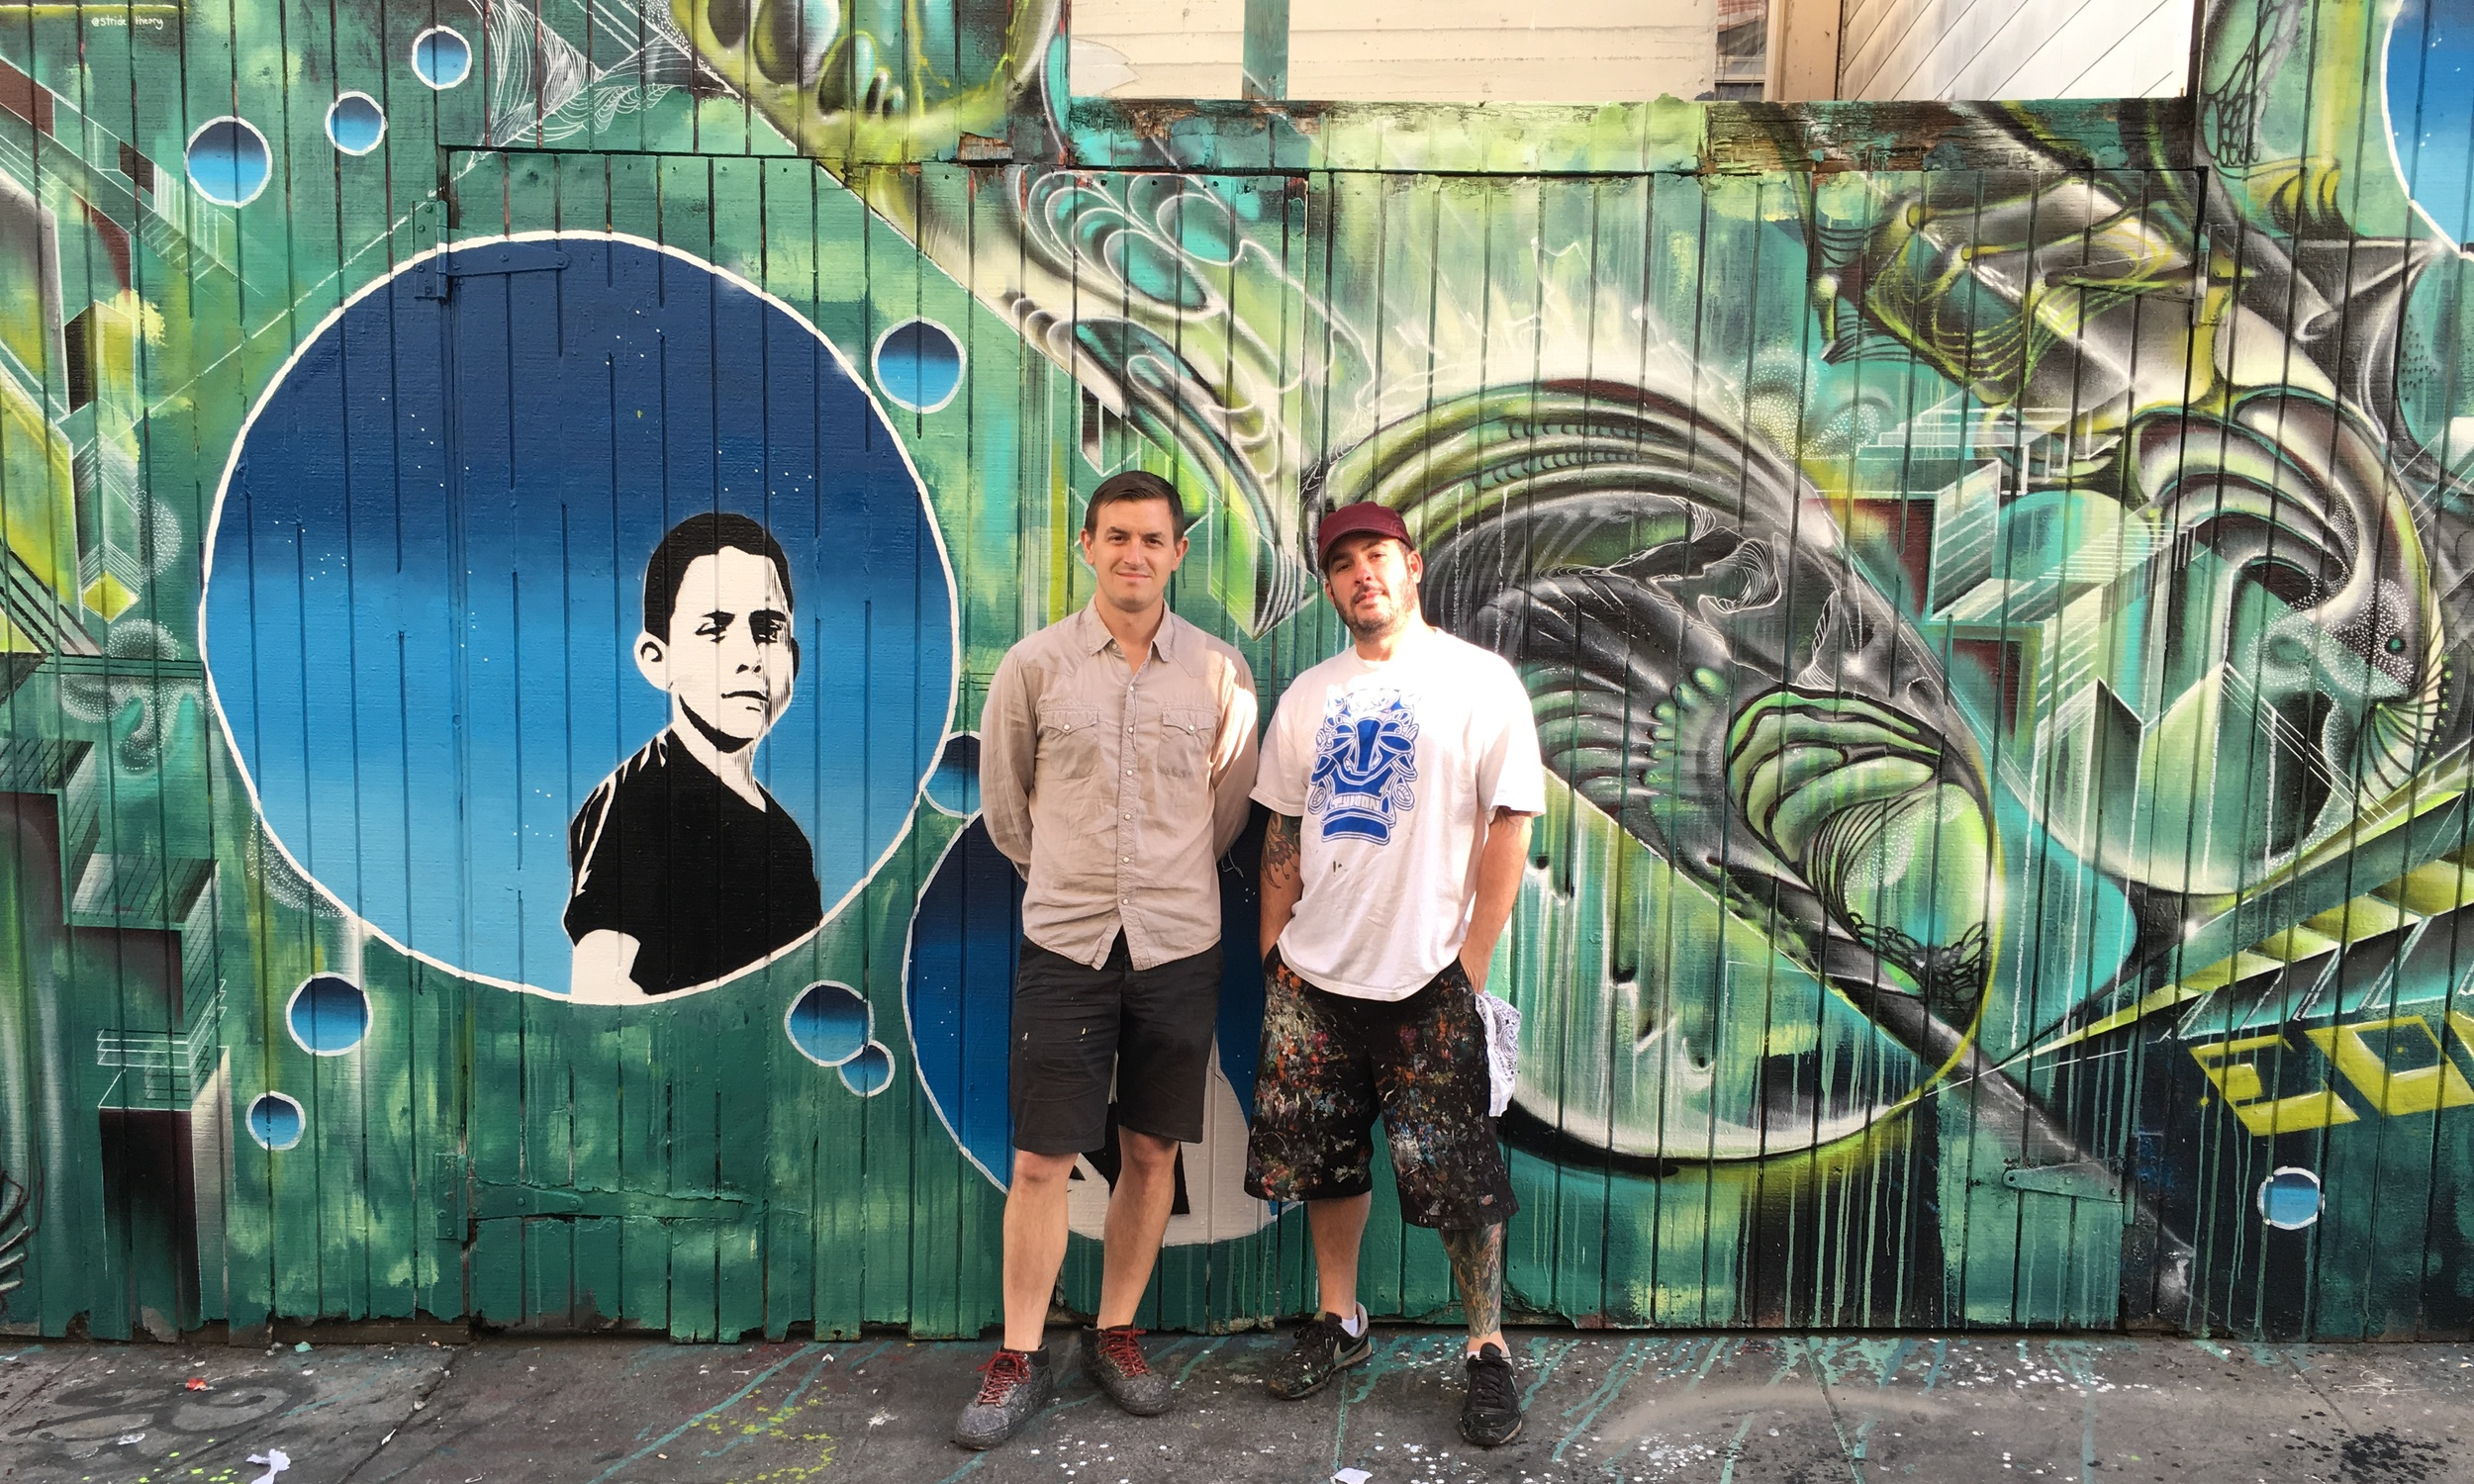 Strider Patton and Max Ehrman in front of their mural in Clarion Alley, San Francisco, CA.